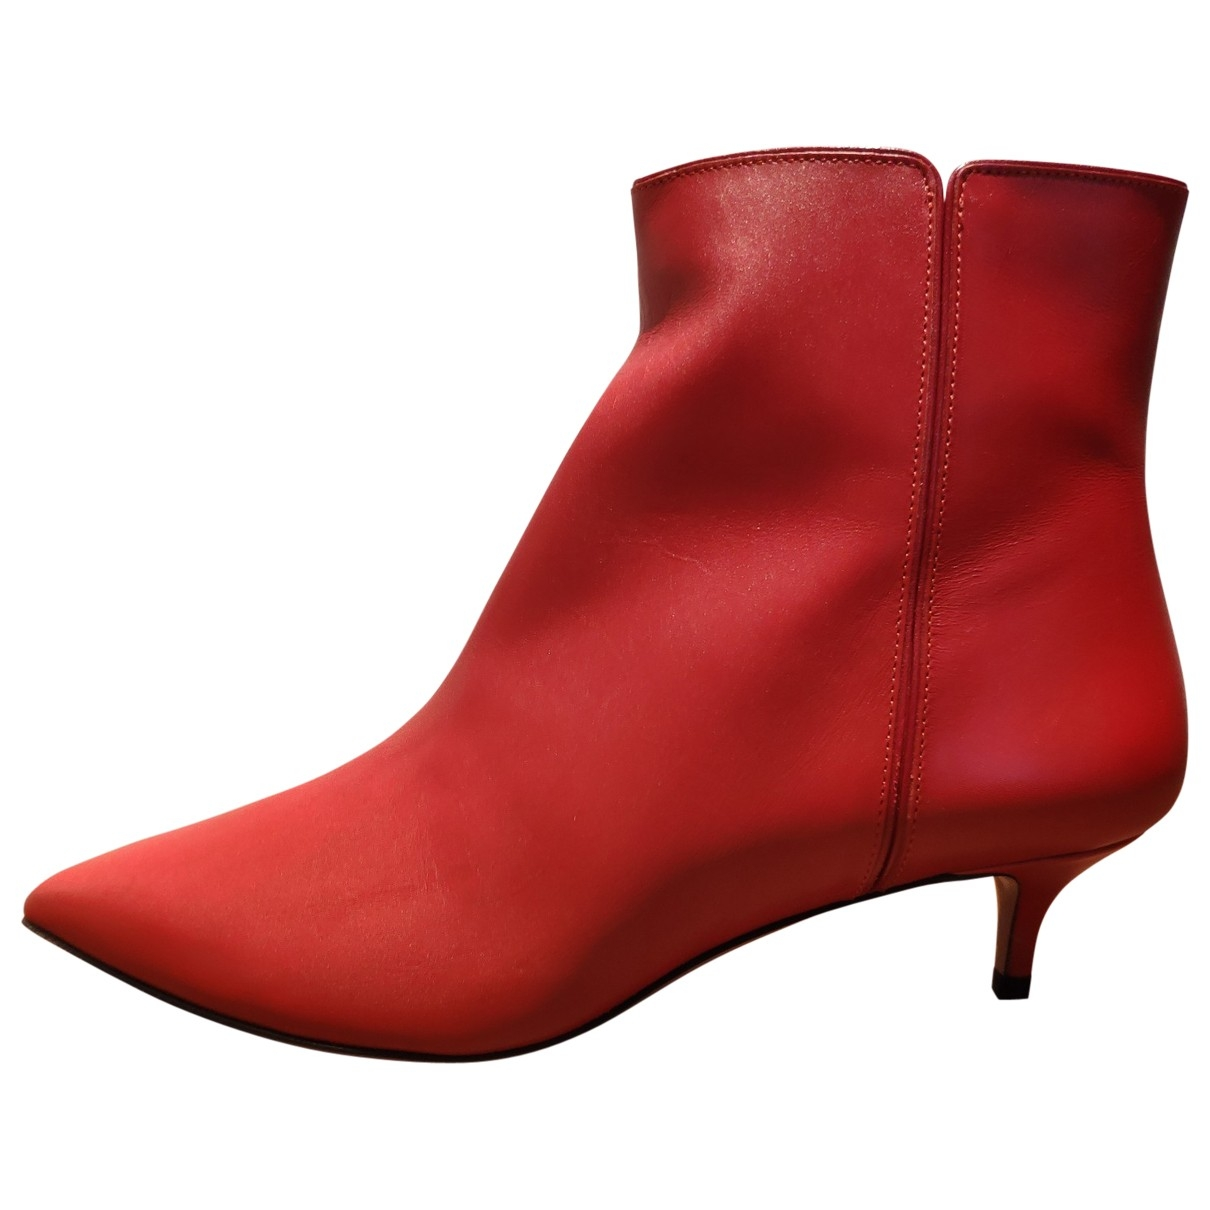 Aquazzura \N Red Leather Ankle boots for Women 36 EU